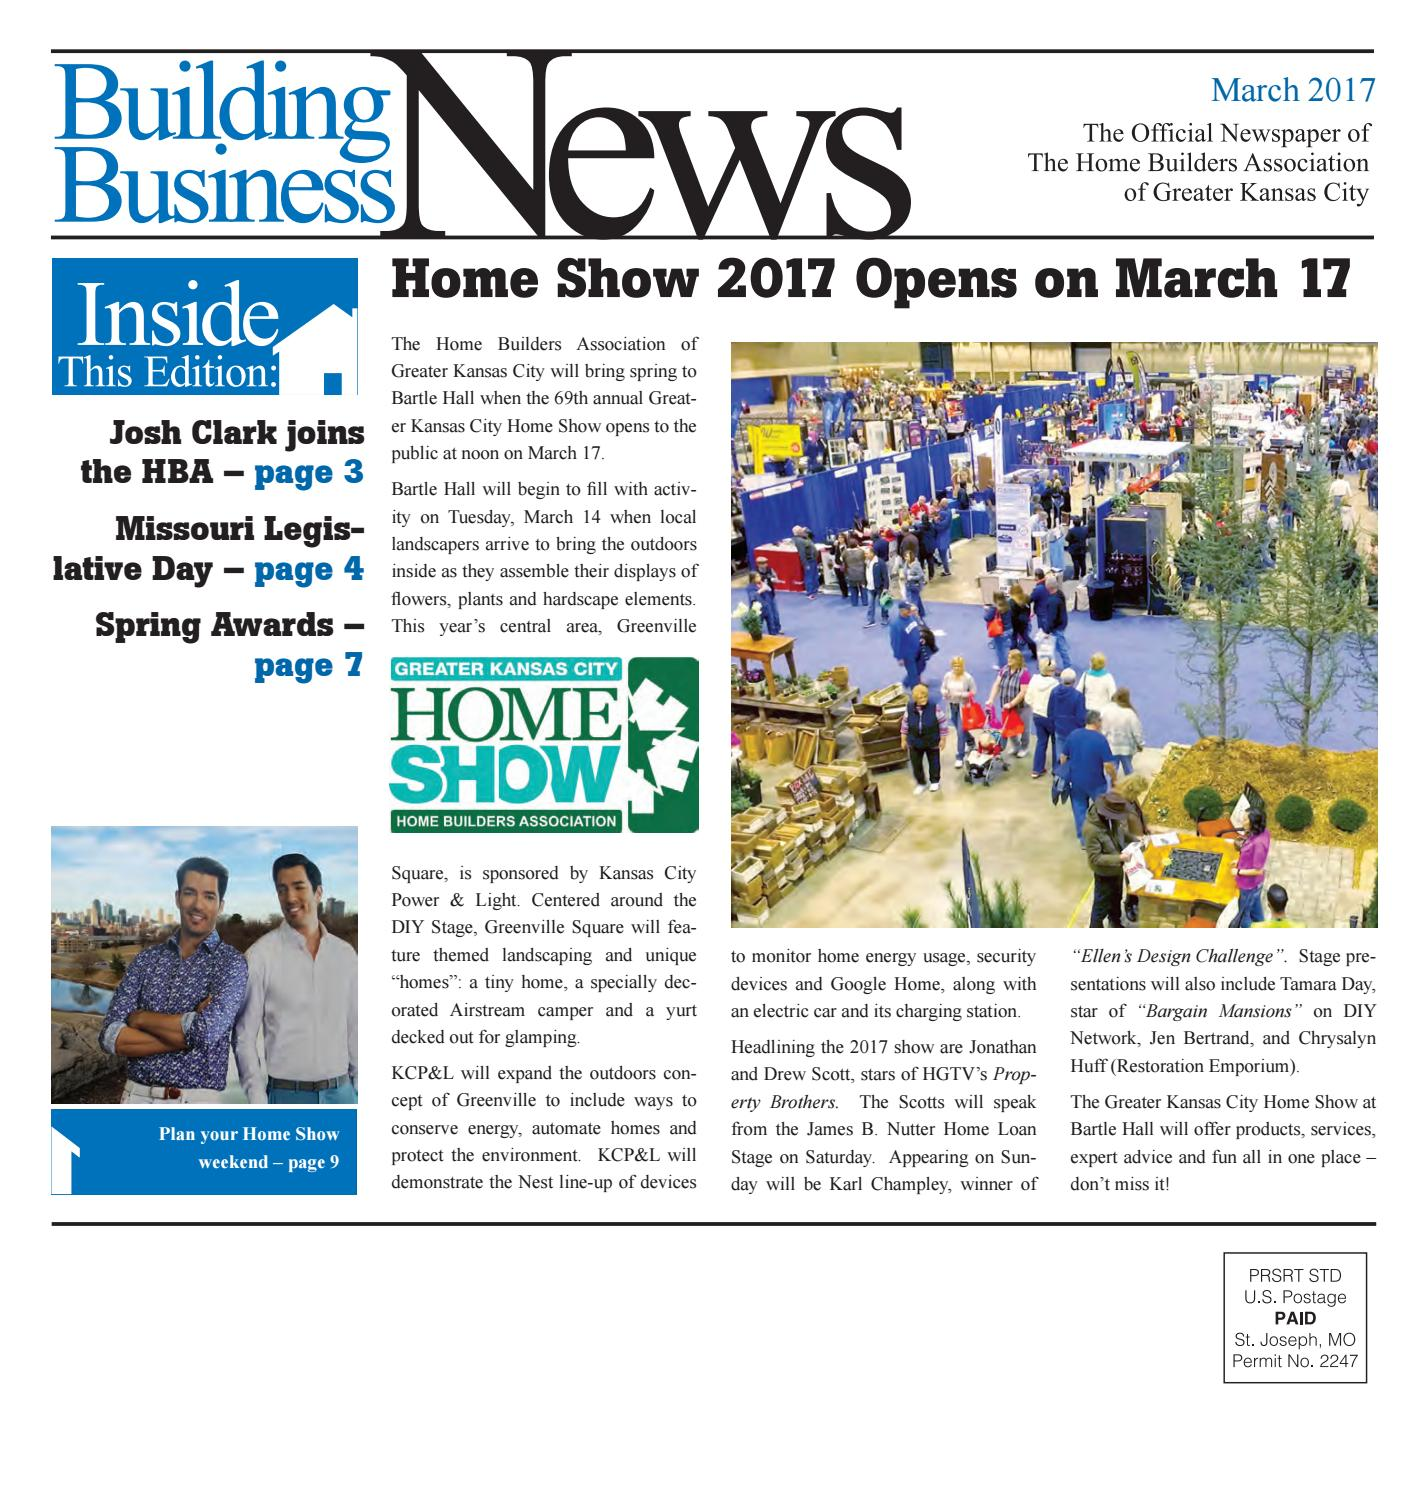 Building Business News For March 2017